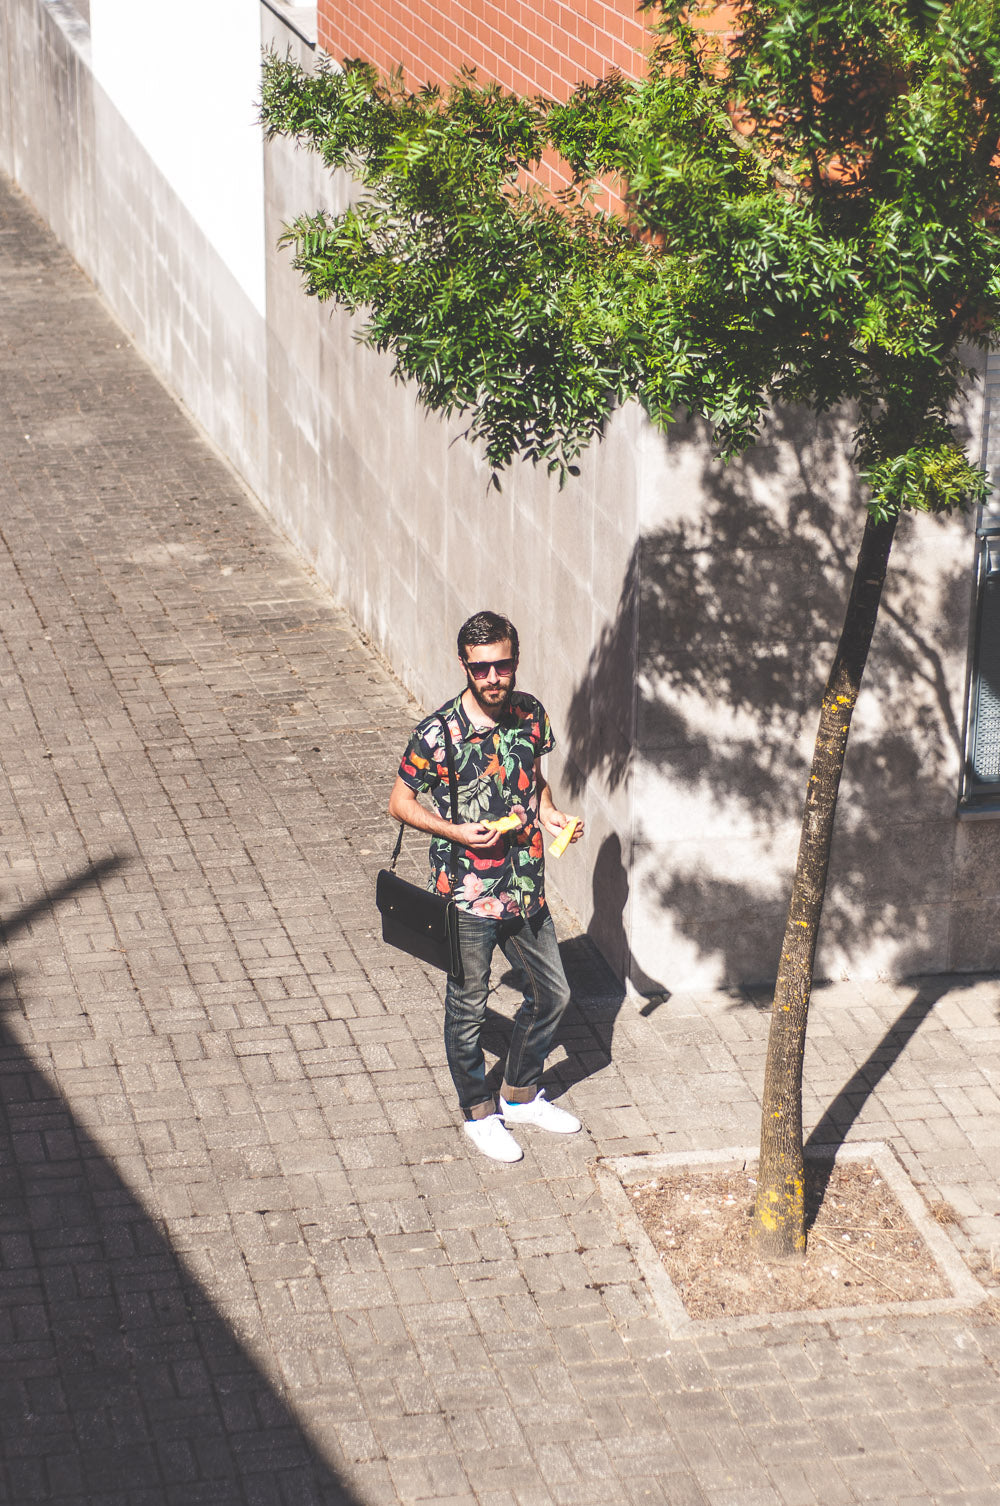 On the street: Noise Goods Folio Cross A4 Black